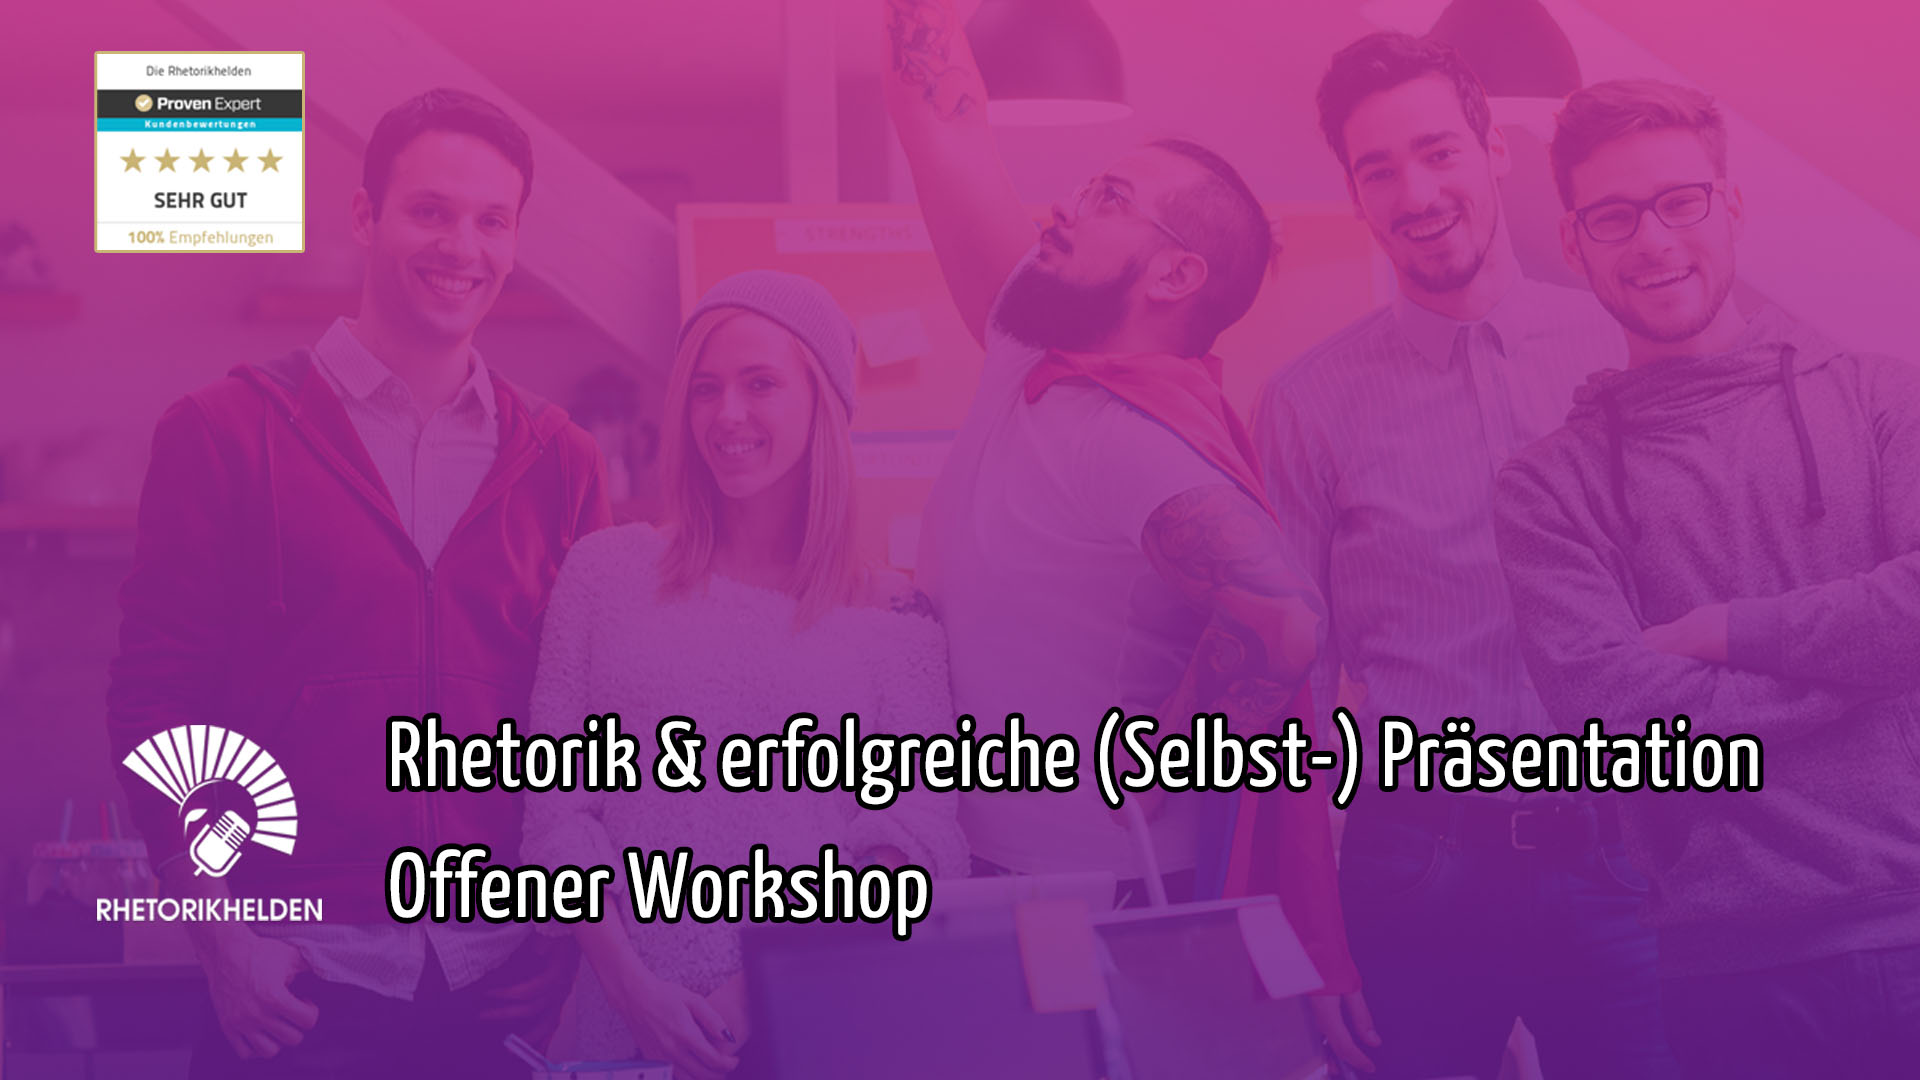 offener-workshop-storytelling-rhetorik-praesentation